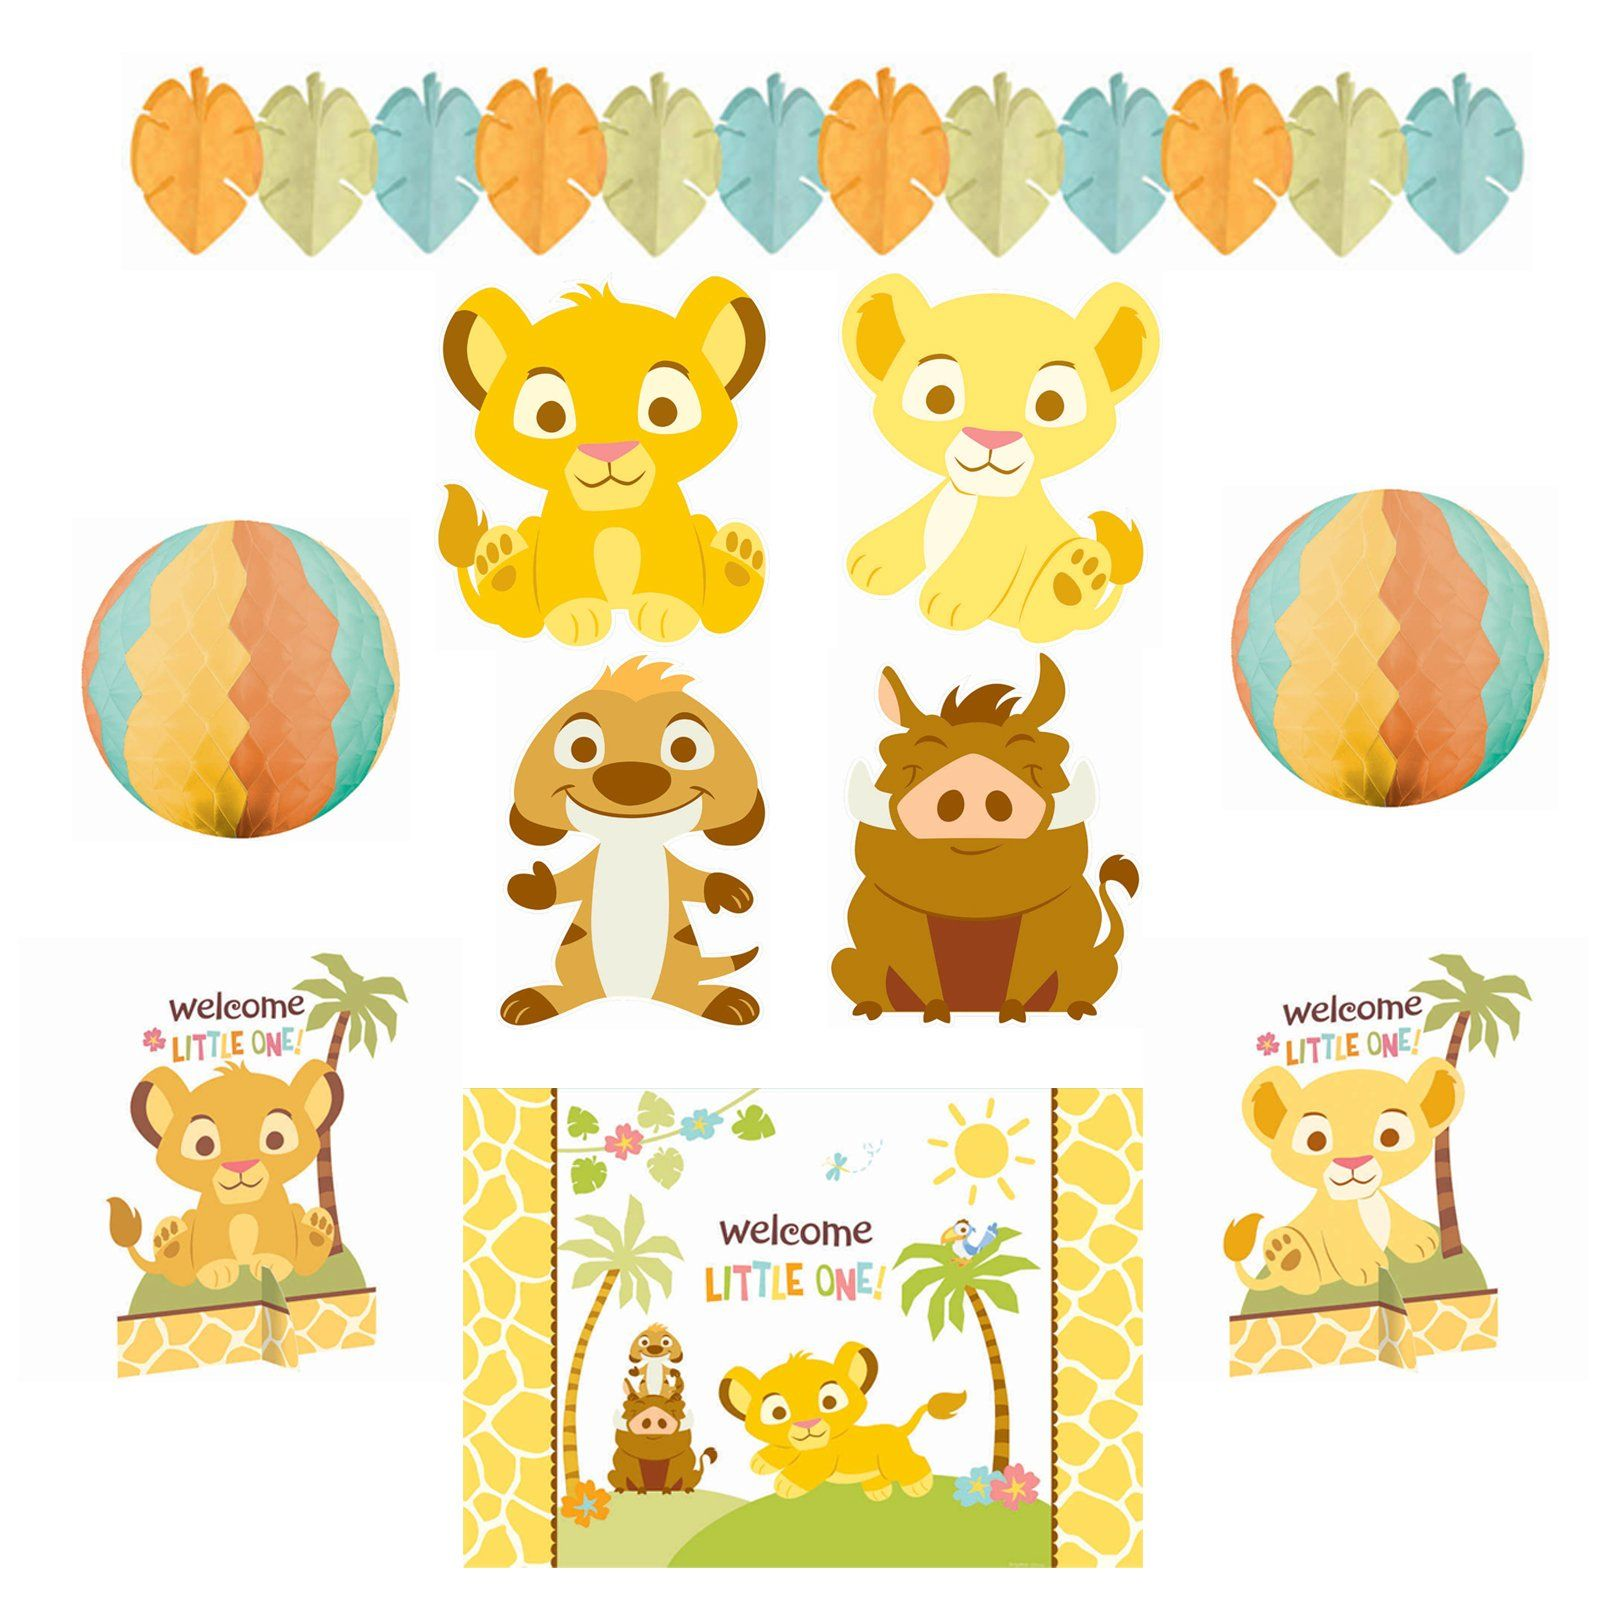 lion king baby shower | Includes (4) cutouts (10"|1600|1600|?|en|2|b840b94fd3b48d3510914f7d70c16750|False|UNLIKELY|0.34962278604507446